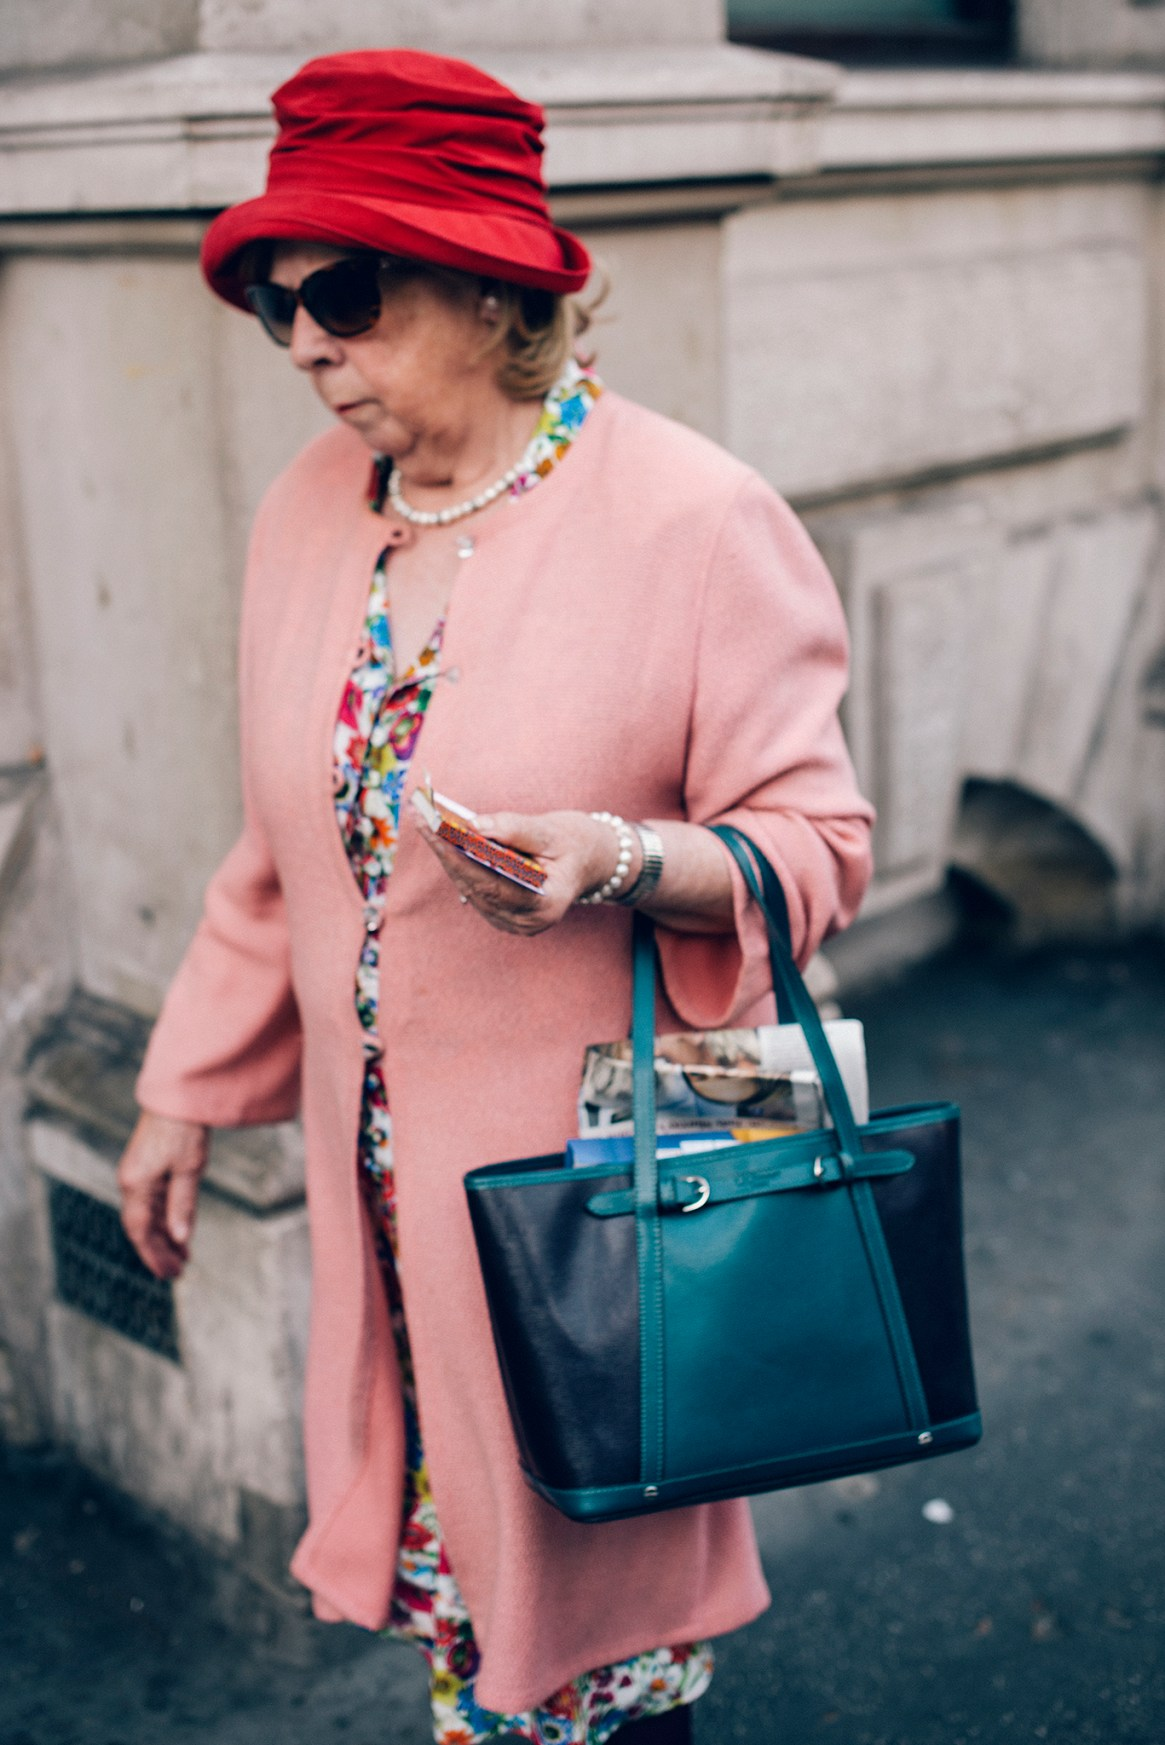 A woman wearing a vintage pink coat, floral dress, red hat, walks along the pavement in Barbican, London holding a small notebook and carrying a large handbag